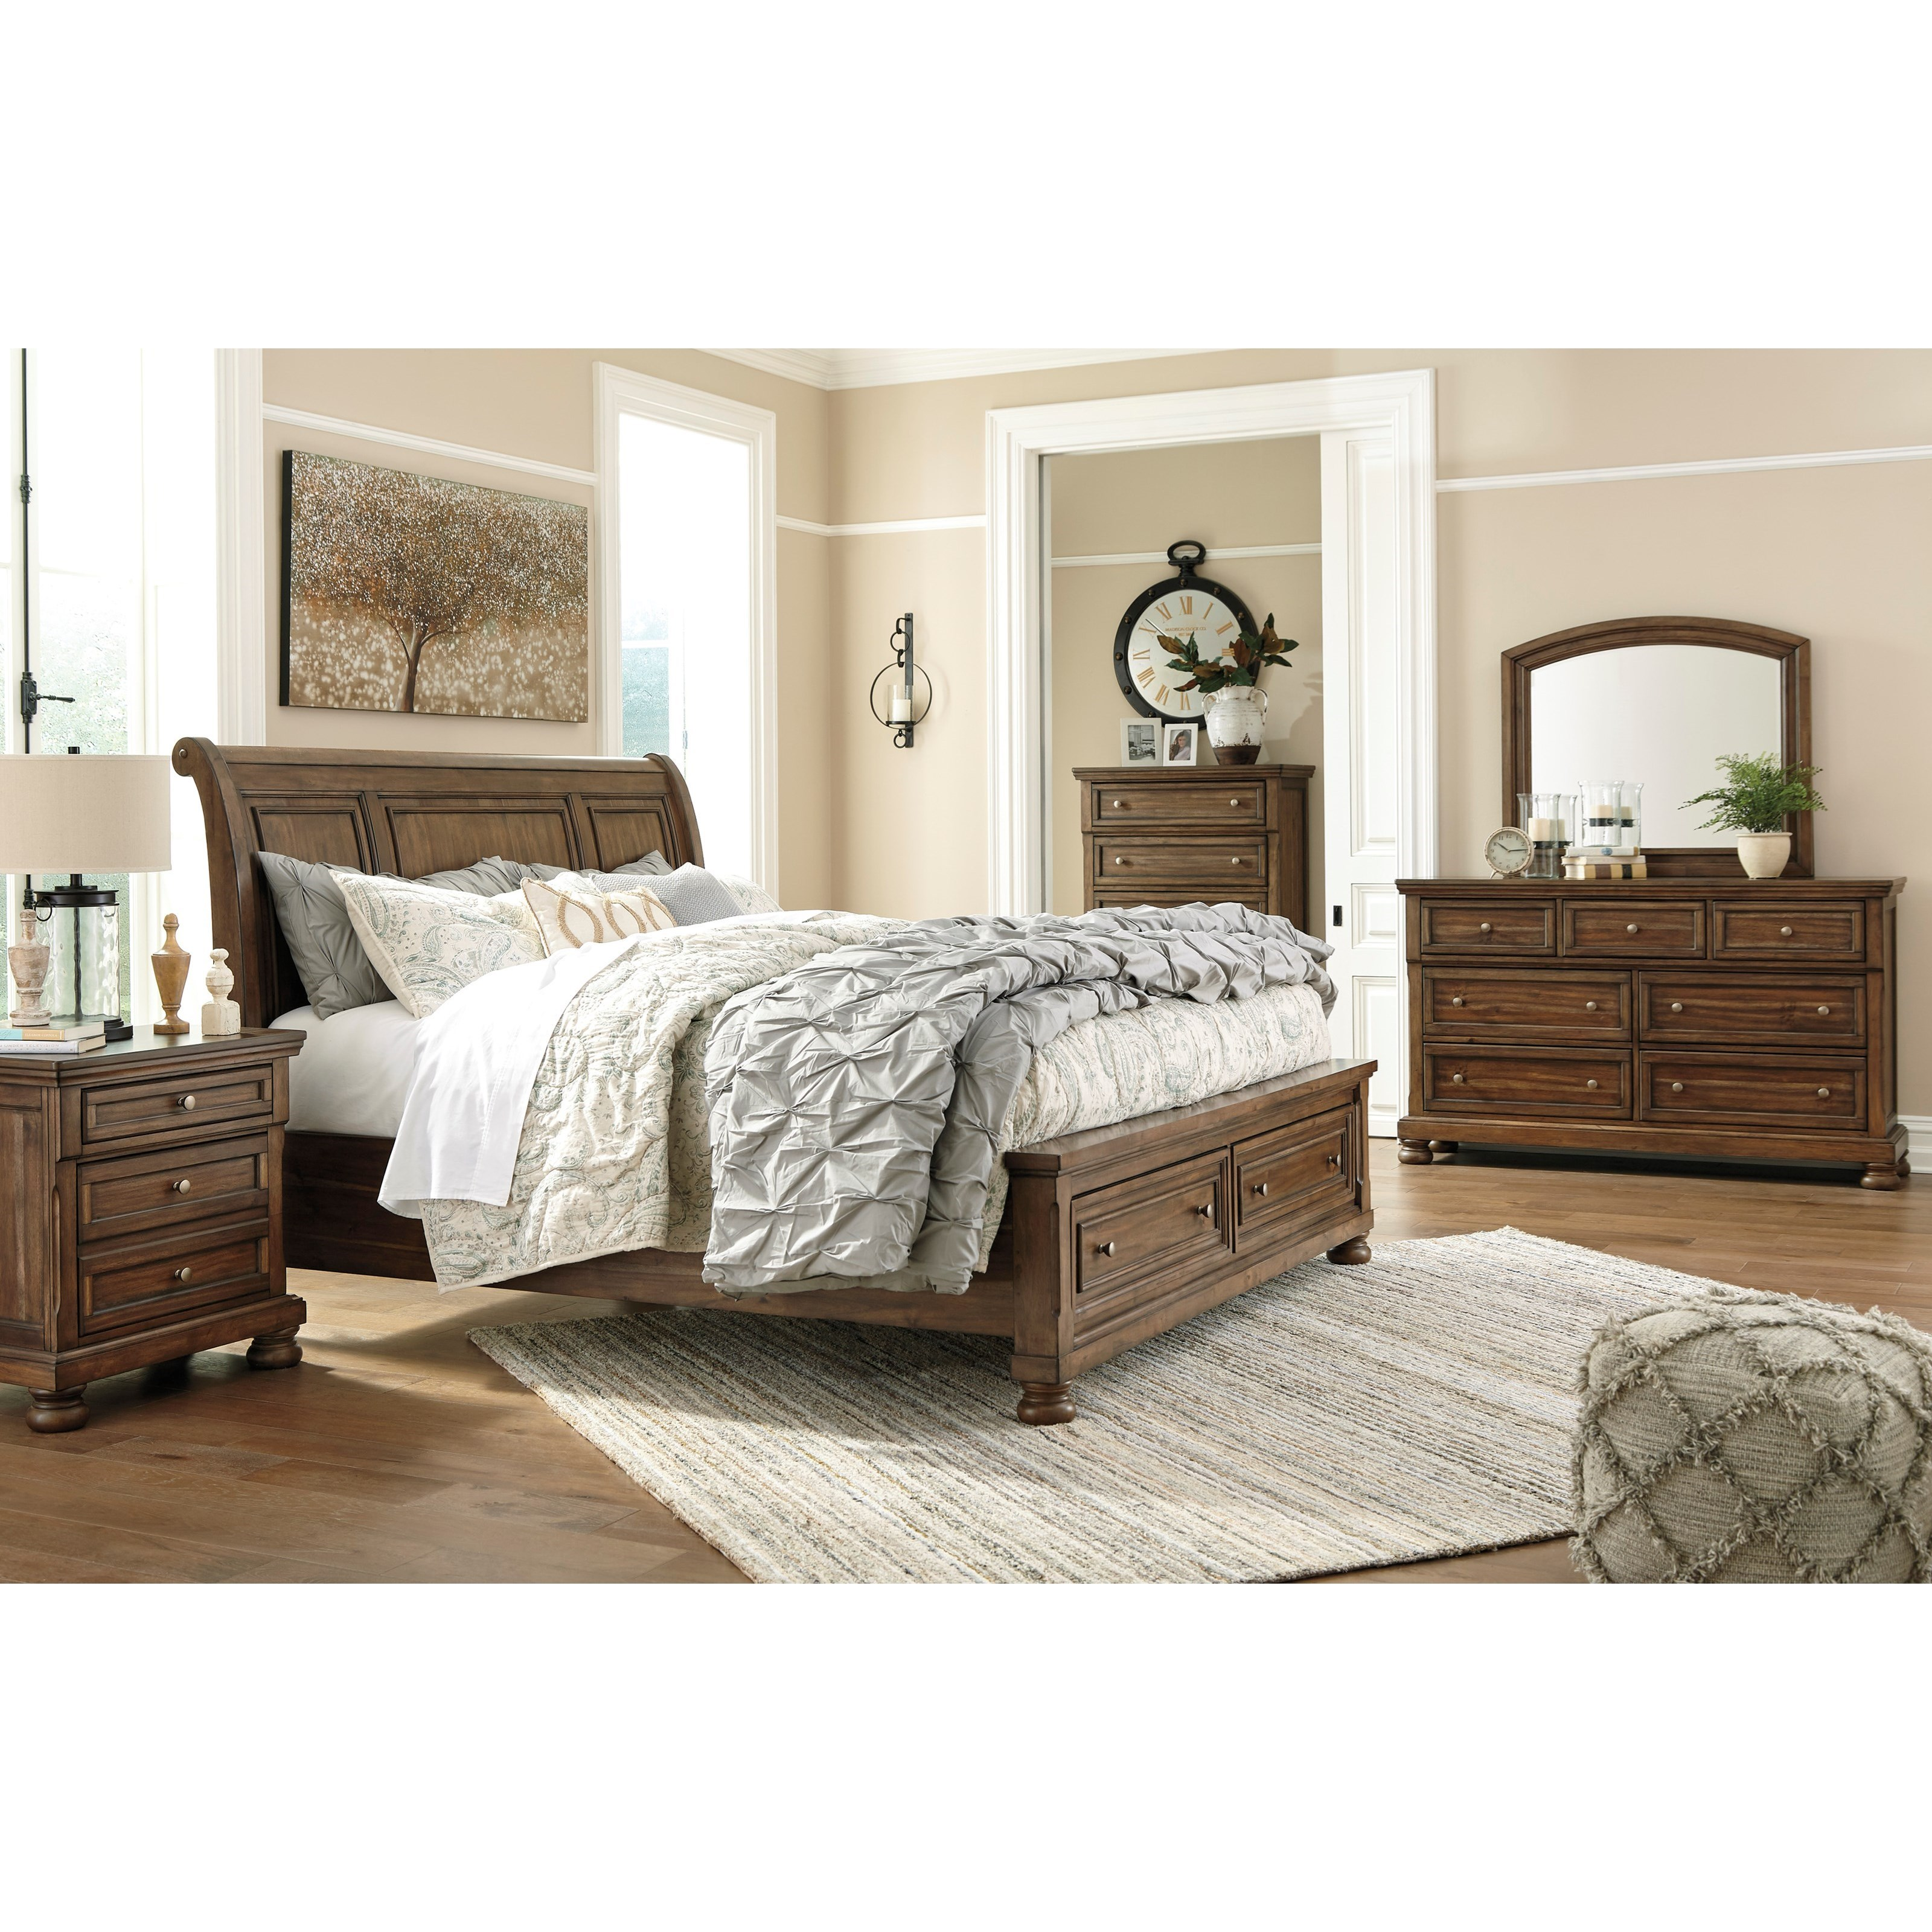 Flynnter California King Bedroom Group by Signature Design by Ashley at Beds N Stuff